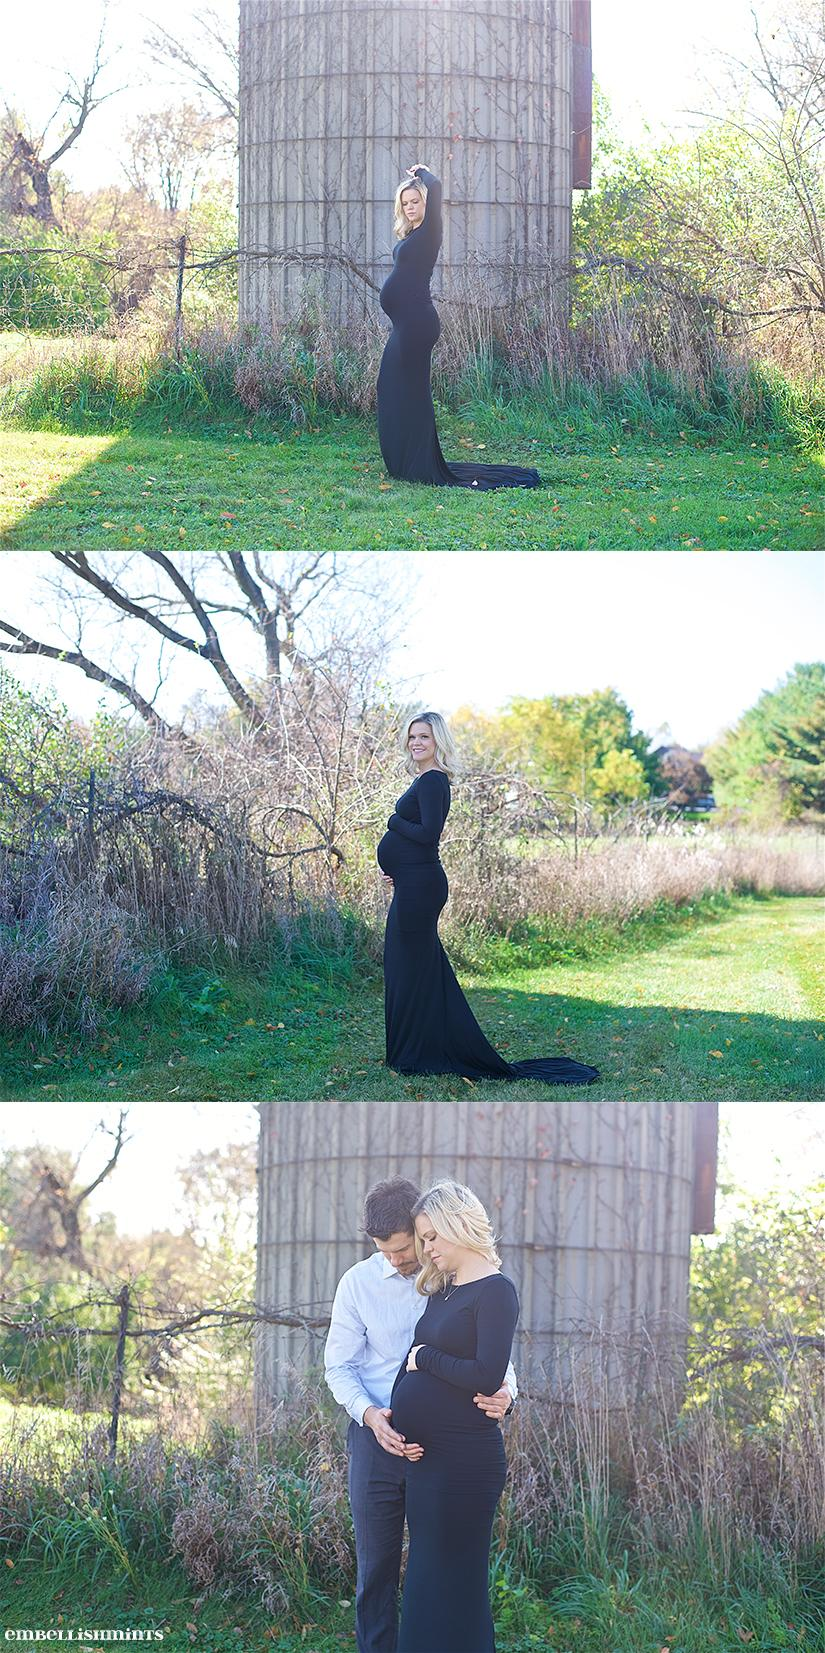 TIMELESS MATERNITY PHOTOS. Looking for truly timeless maternity photos that will stand the test of time? Show your photographer these photos and you will love the results! www.Embellishmints.com